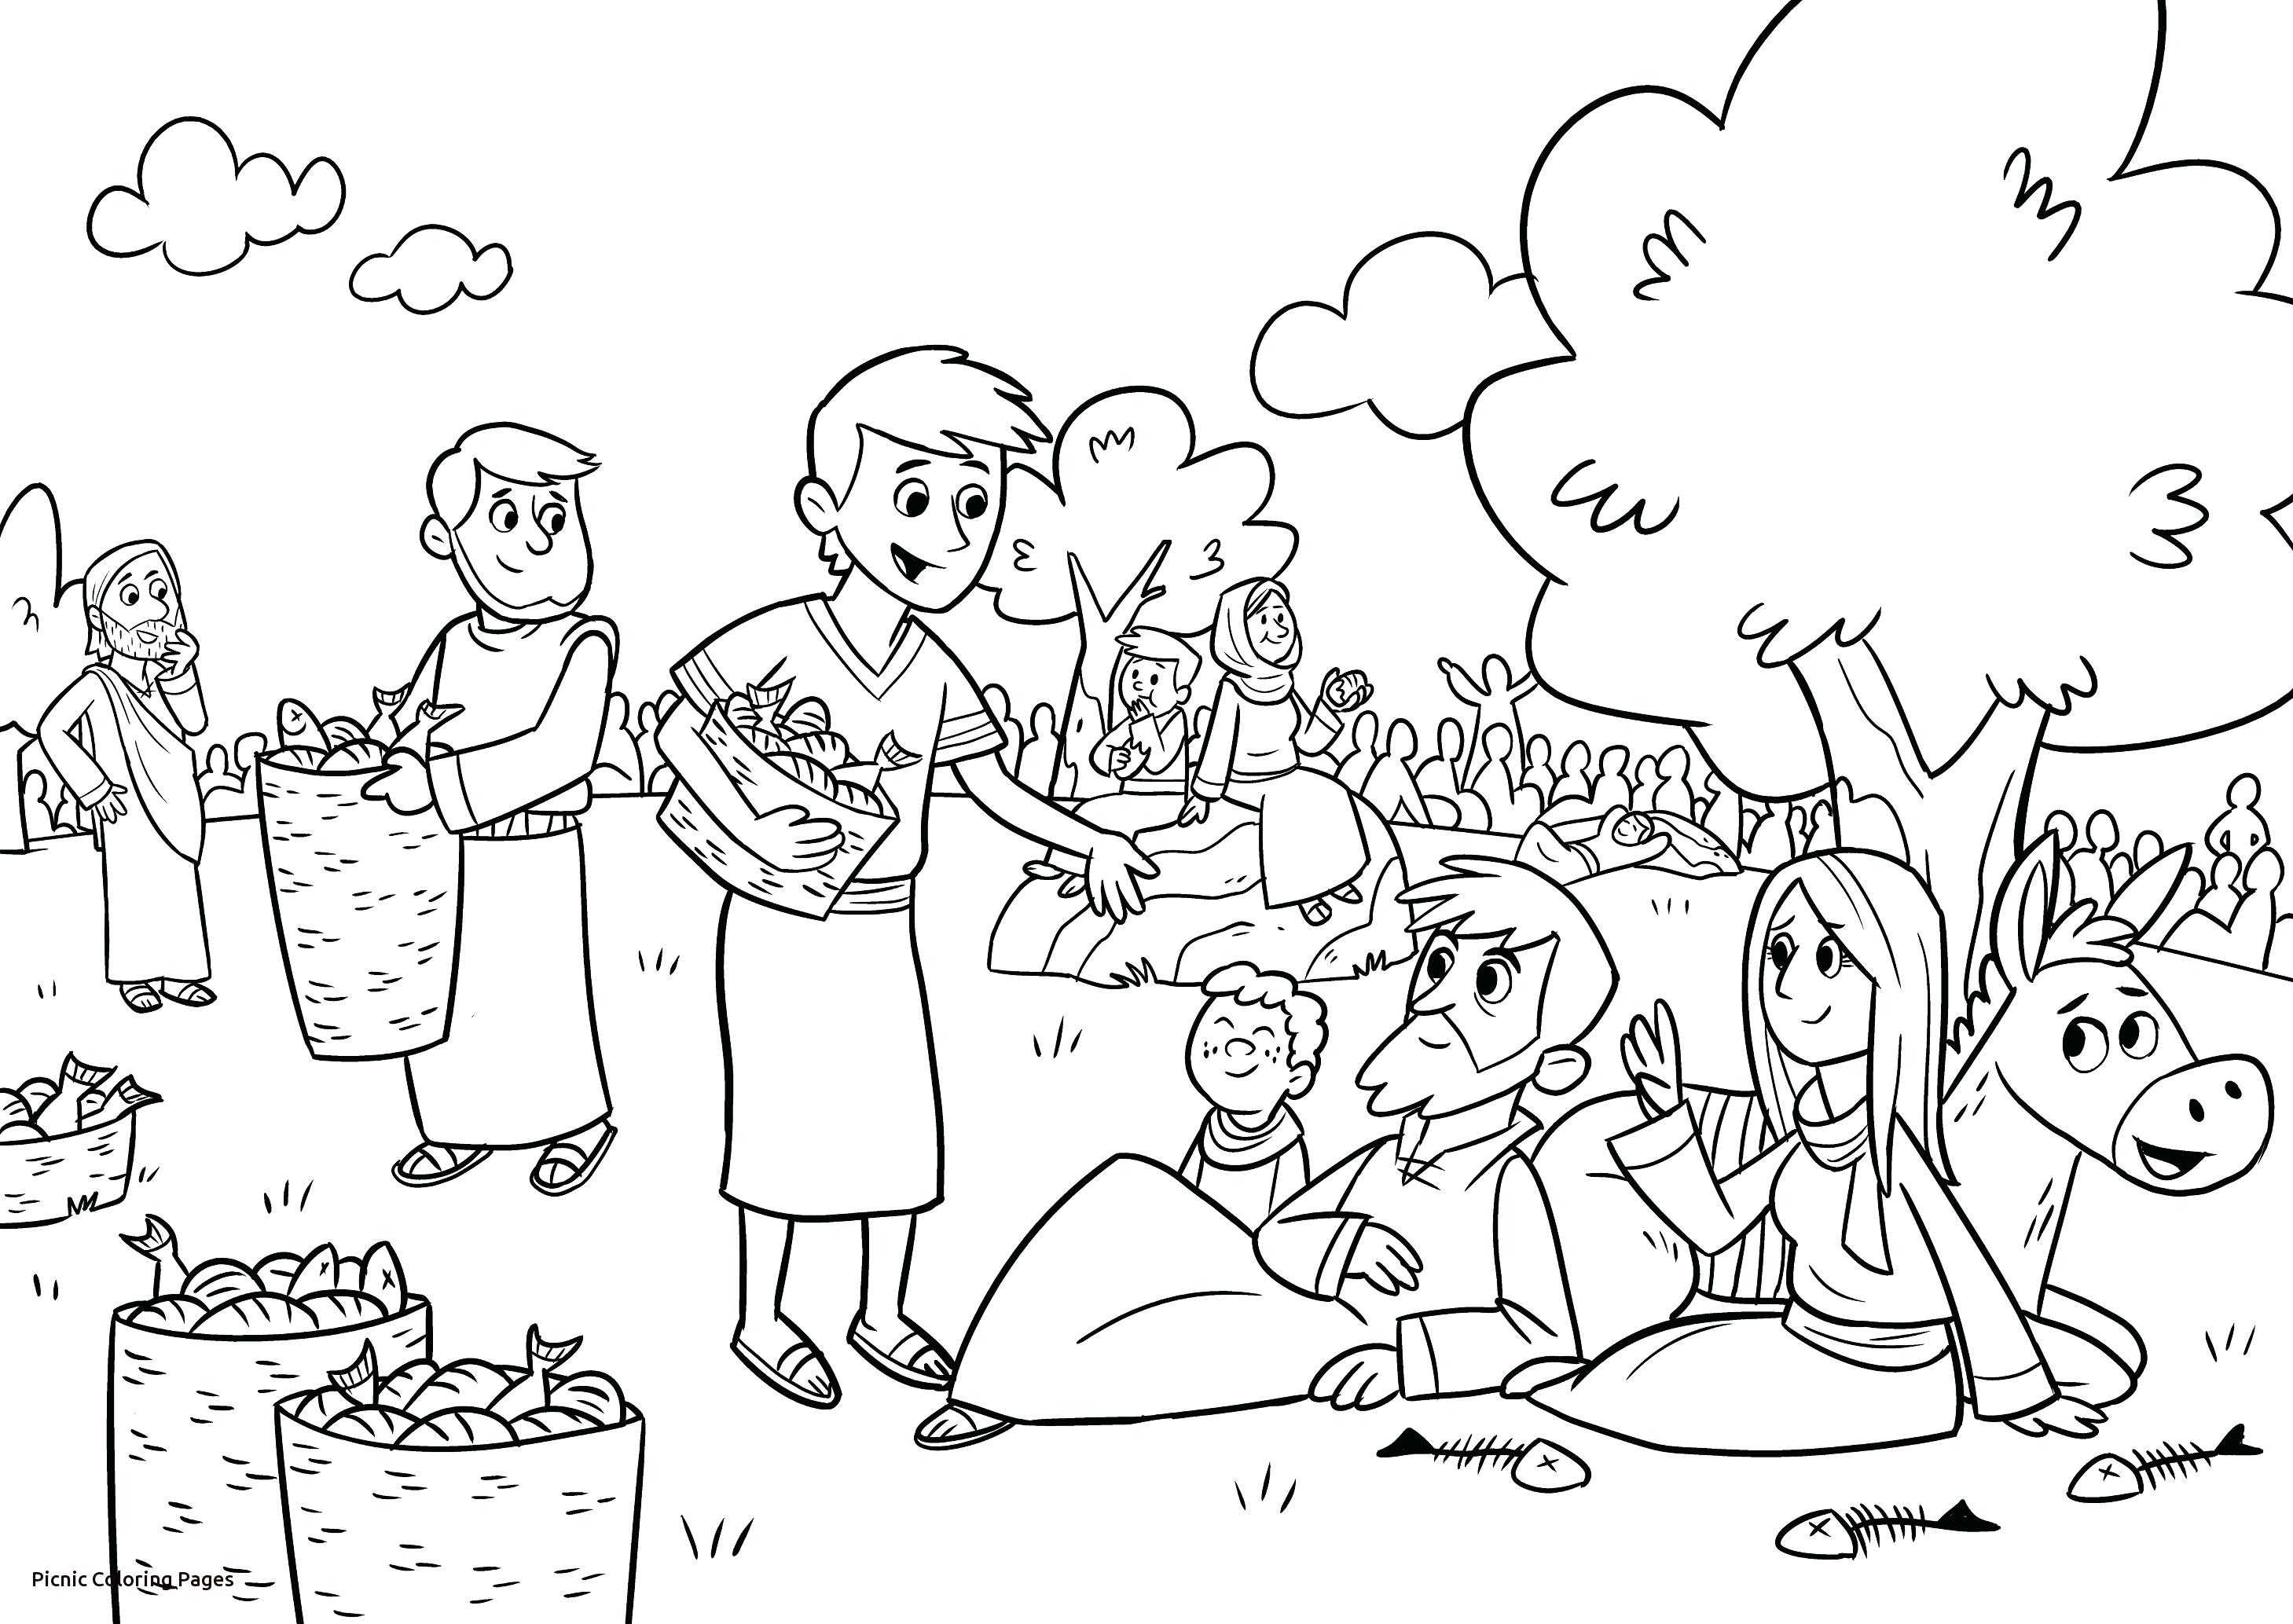 Family Picnic Coloring Pages At Getcolorings